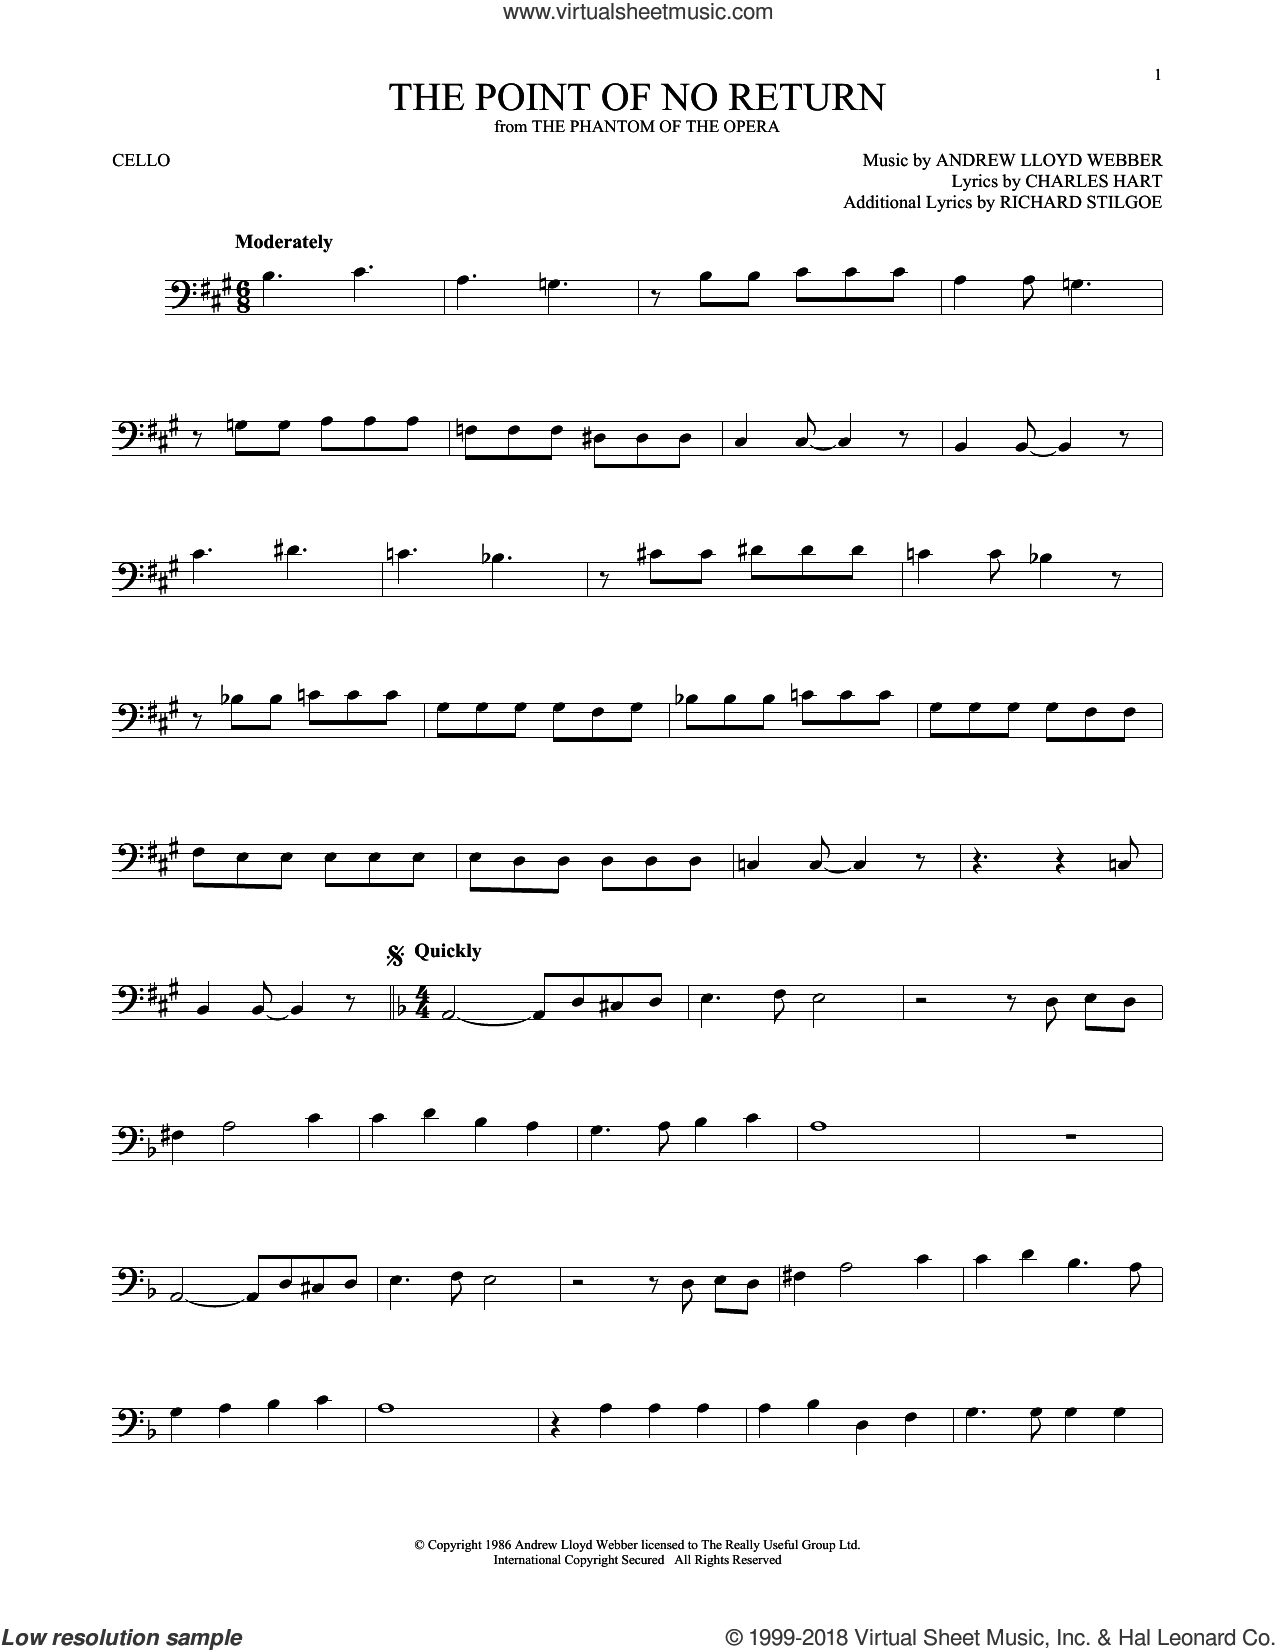 The Point Of No Return (from The Phantom Of The Opera) sheet music for cello solo by Andrew Lloyd Webber, Charles Hart and Richard Stilgoe, intermediate skill level